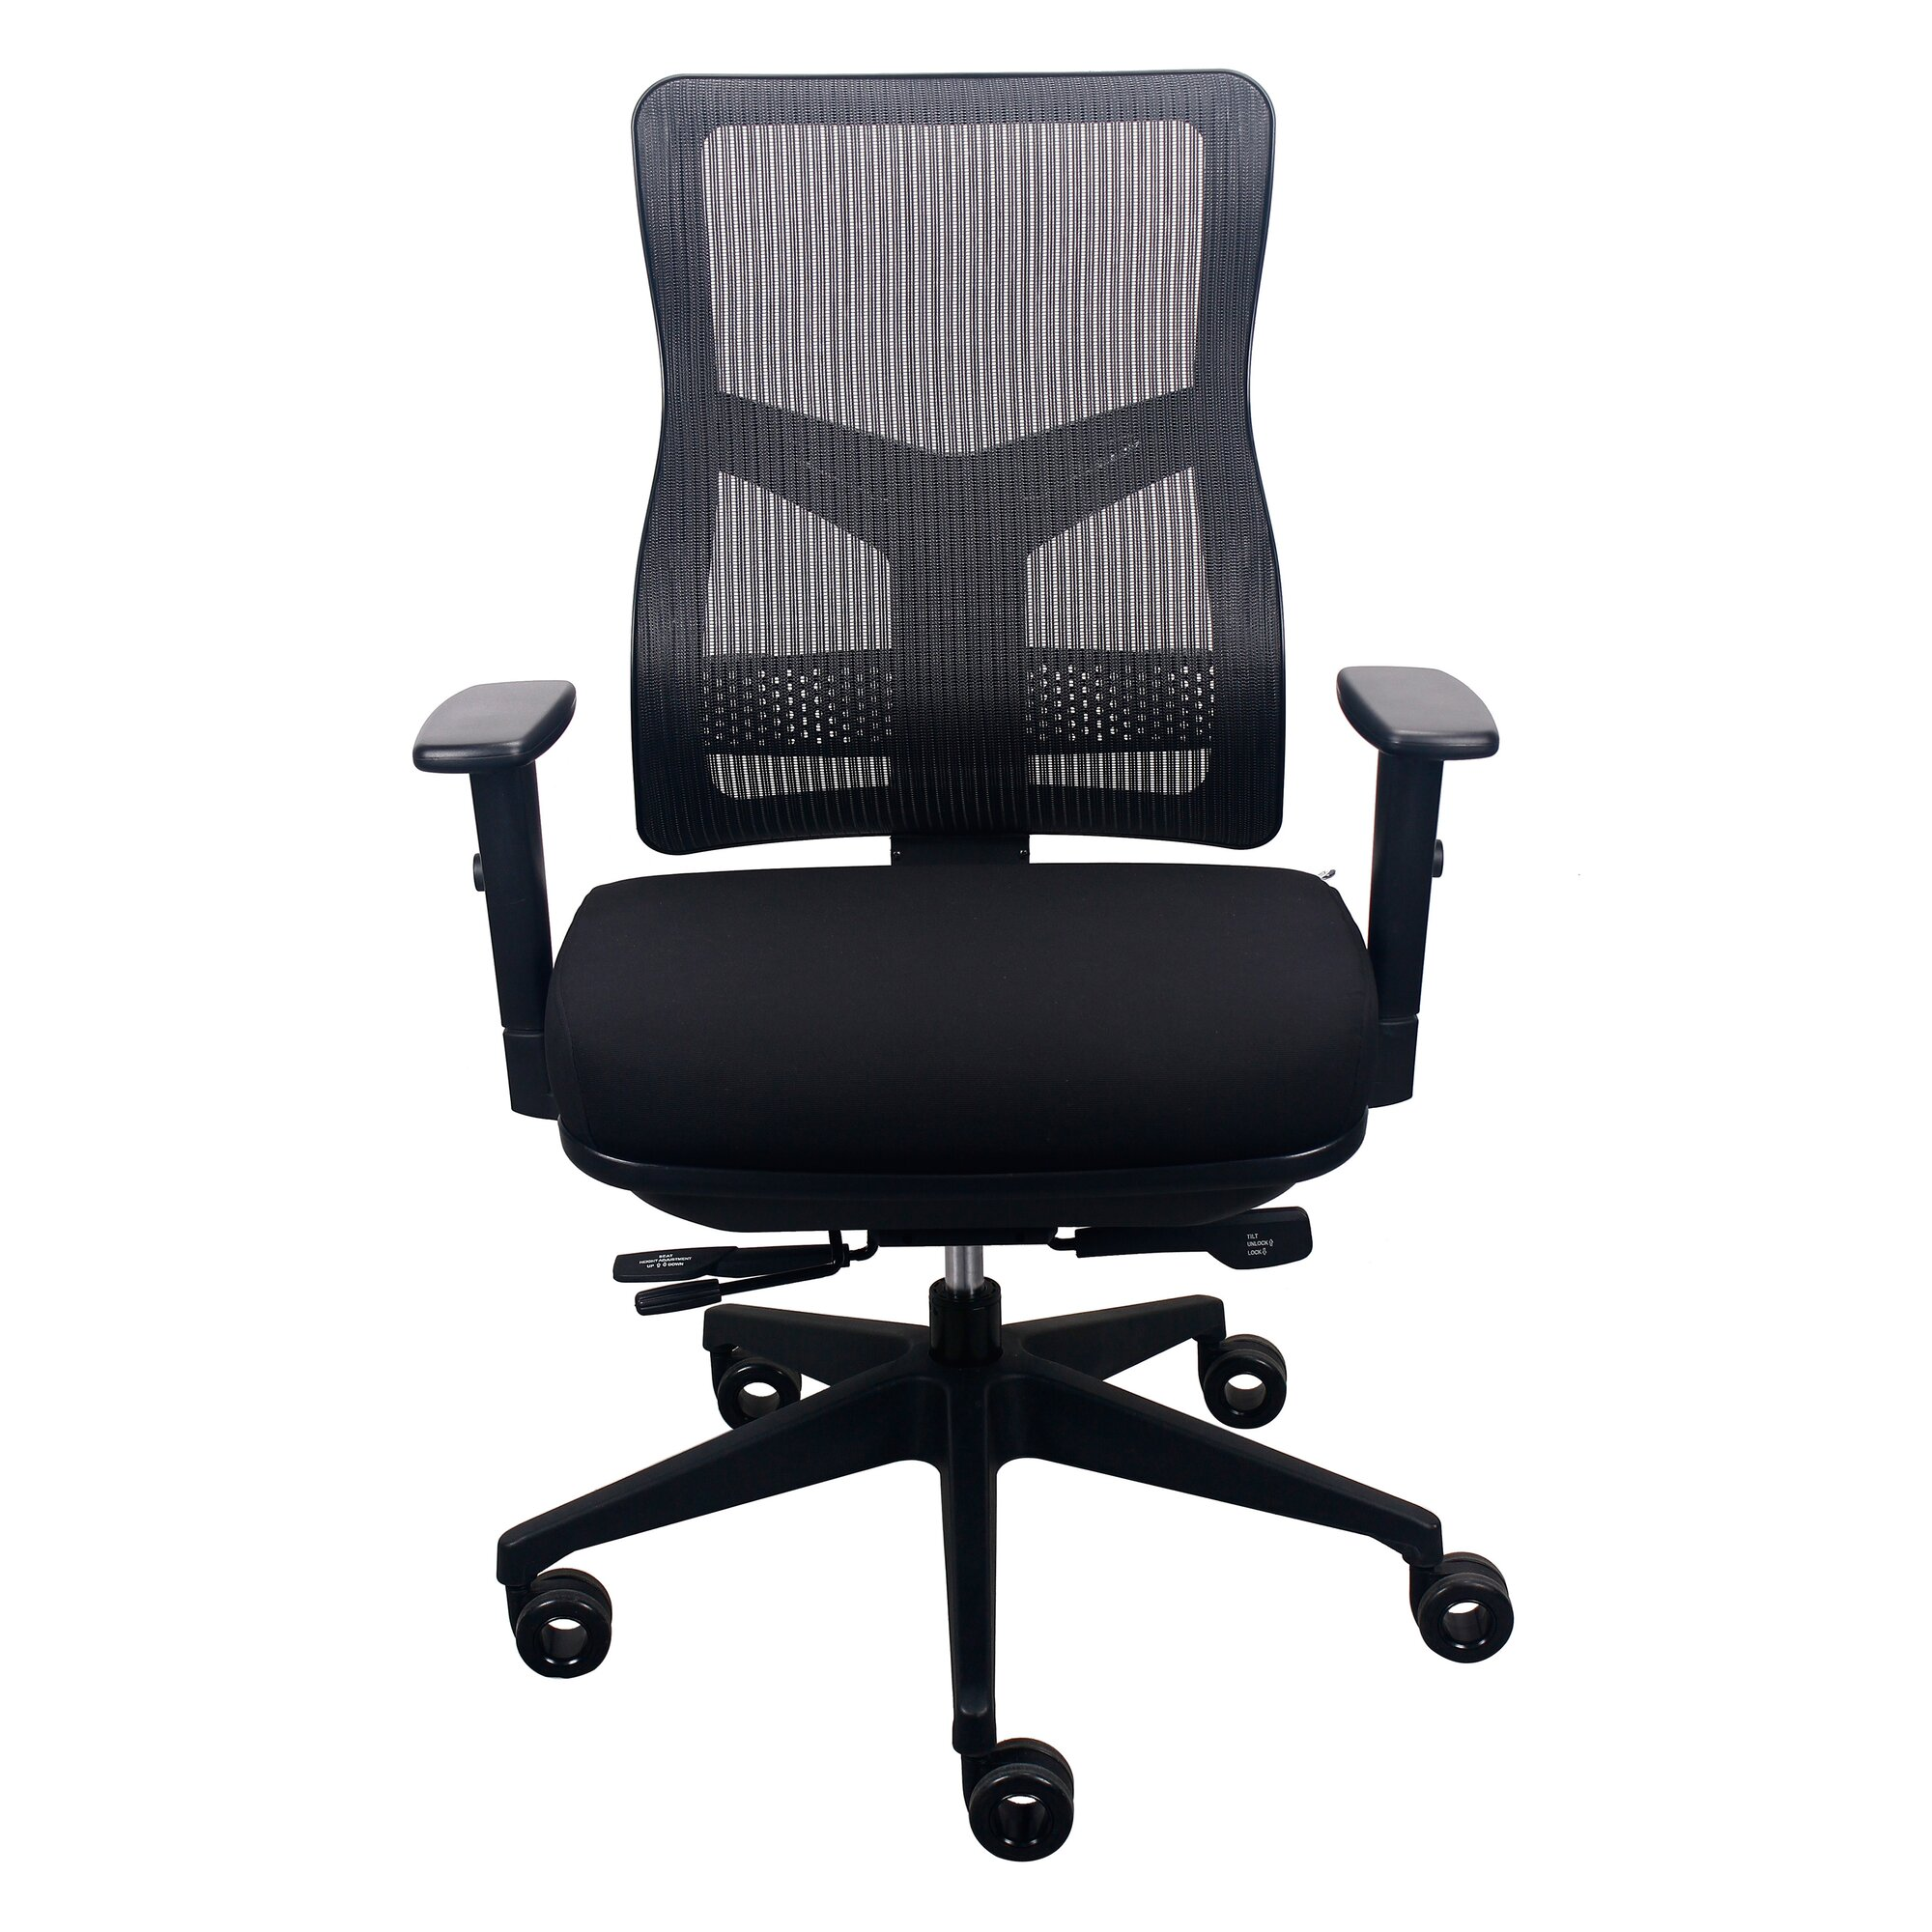 Tempur Pedic Ergonomic fice Chair Top Dx Racer Doheanr Racing